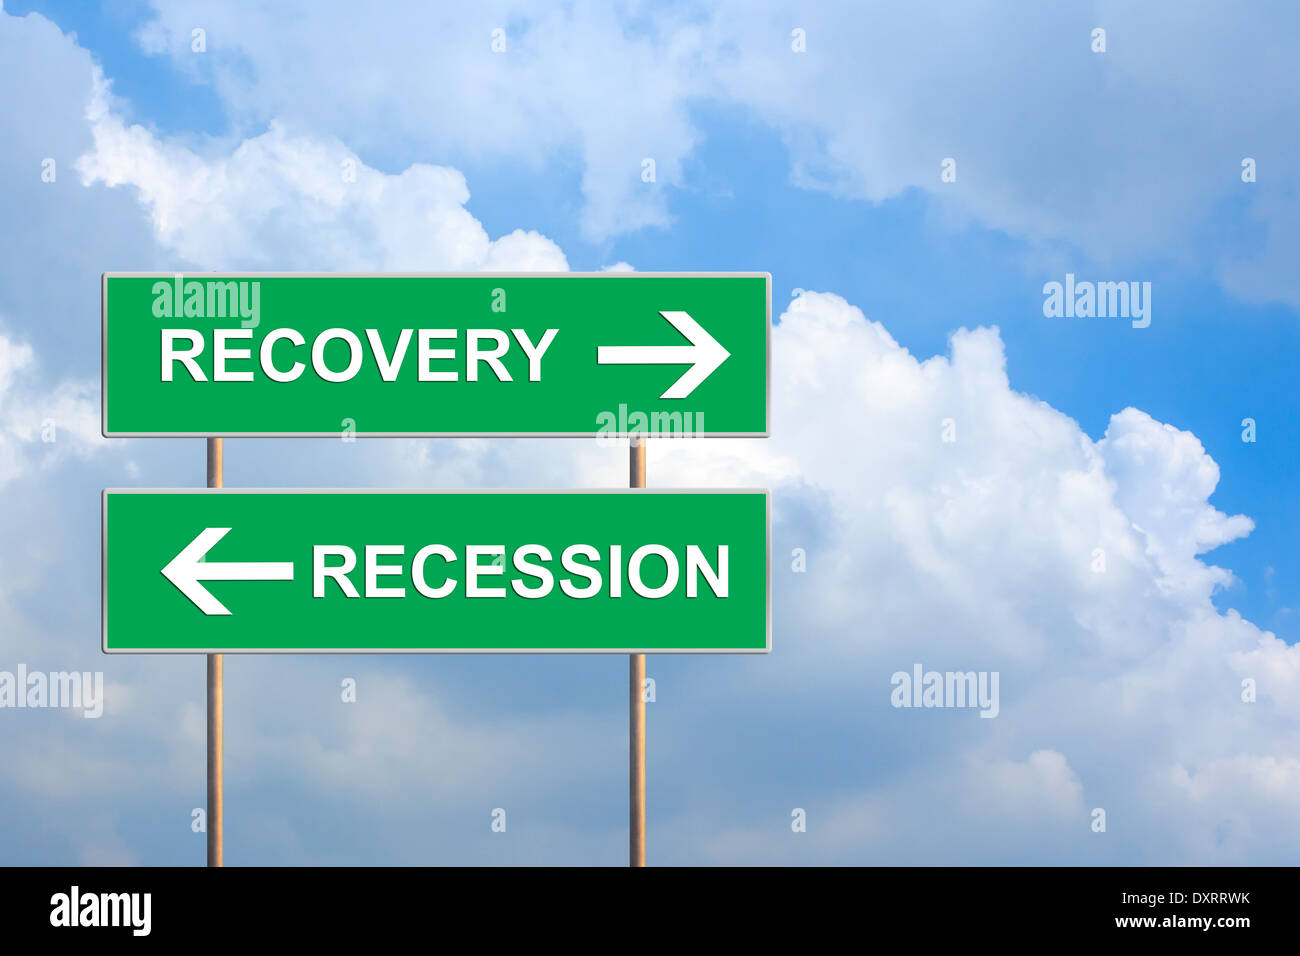 recovery and recession on green road sign with blue sky - Stock Image